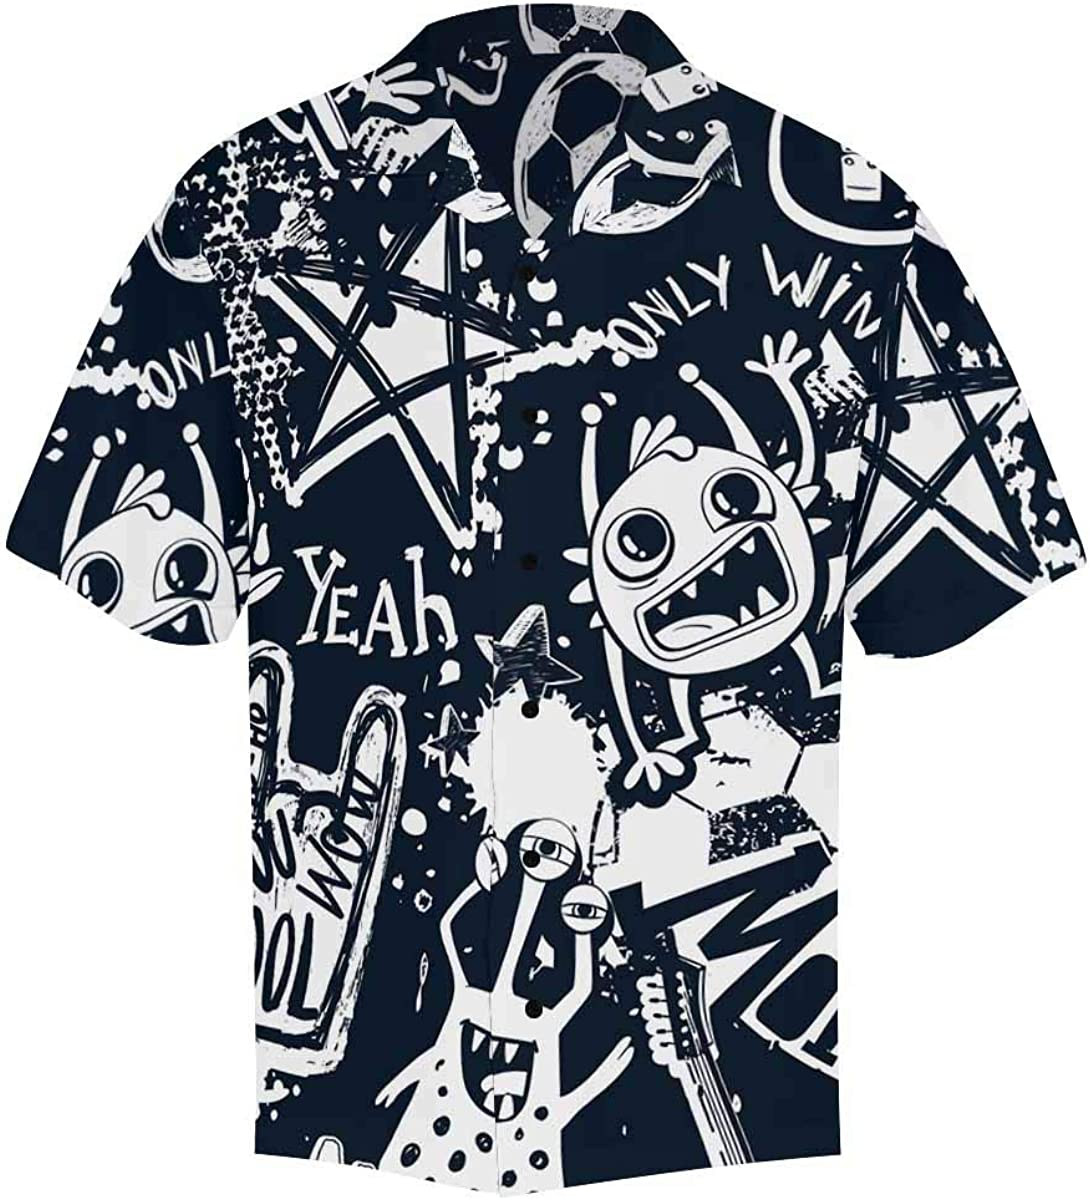 InterestPrint Men's Casual Button Max 44% OFF Down Monster Dallas Mall Short Sleeve with